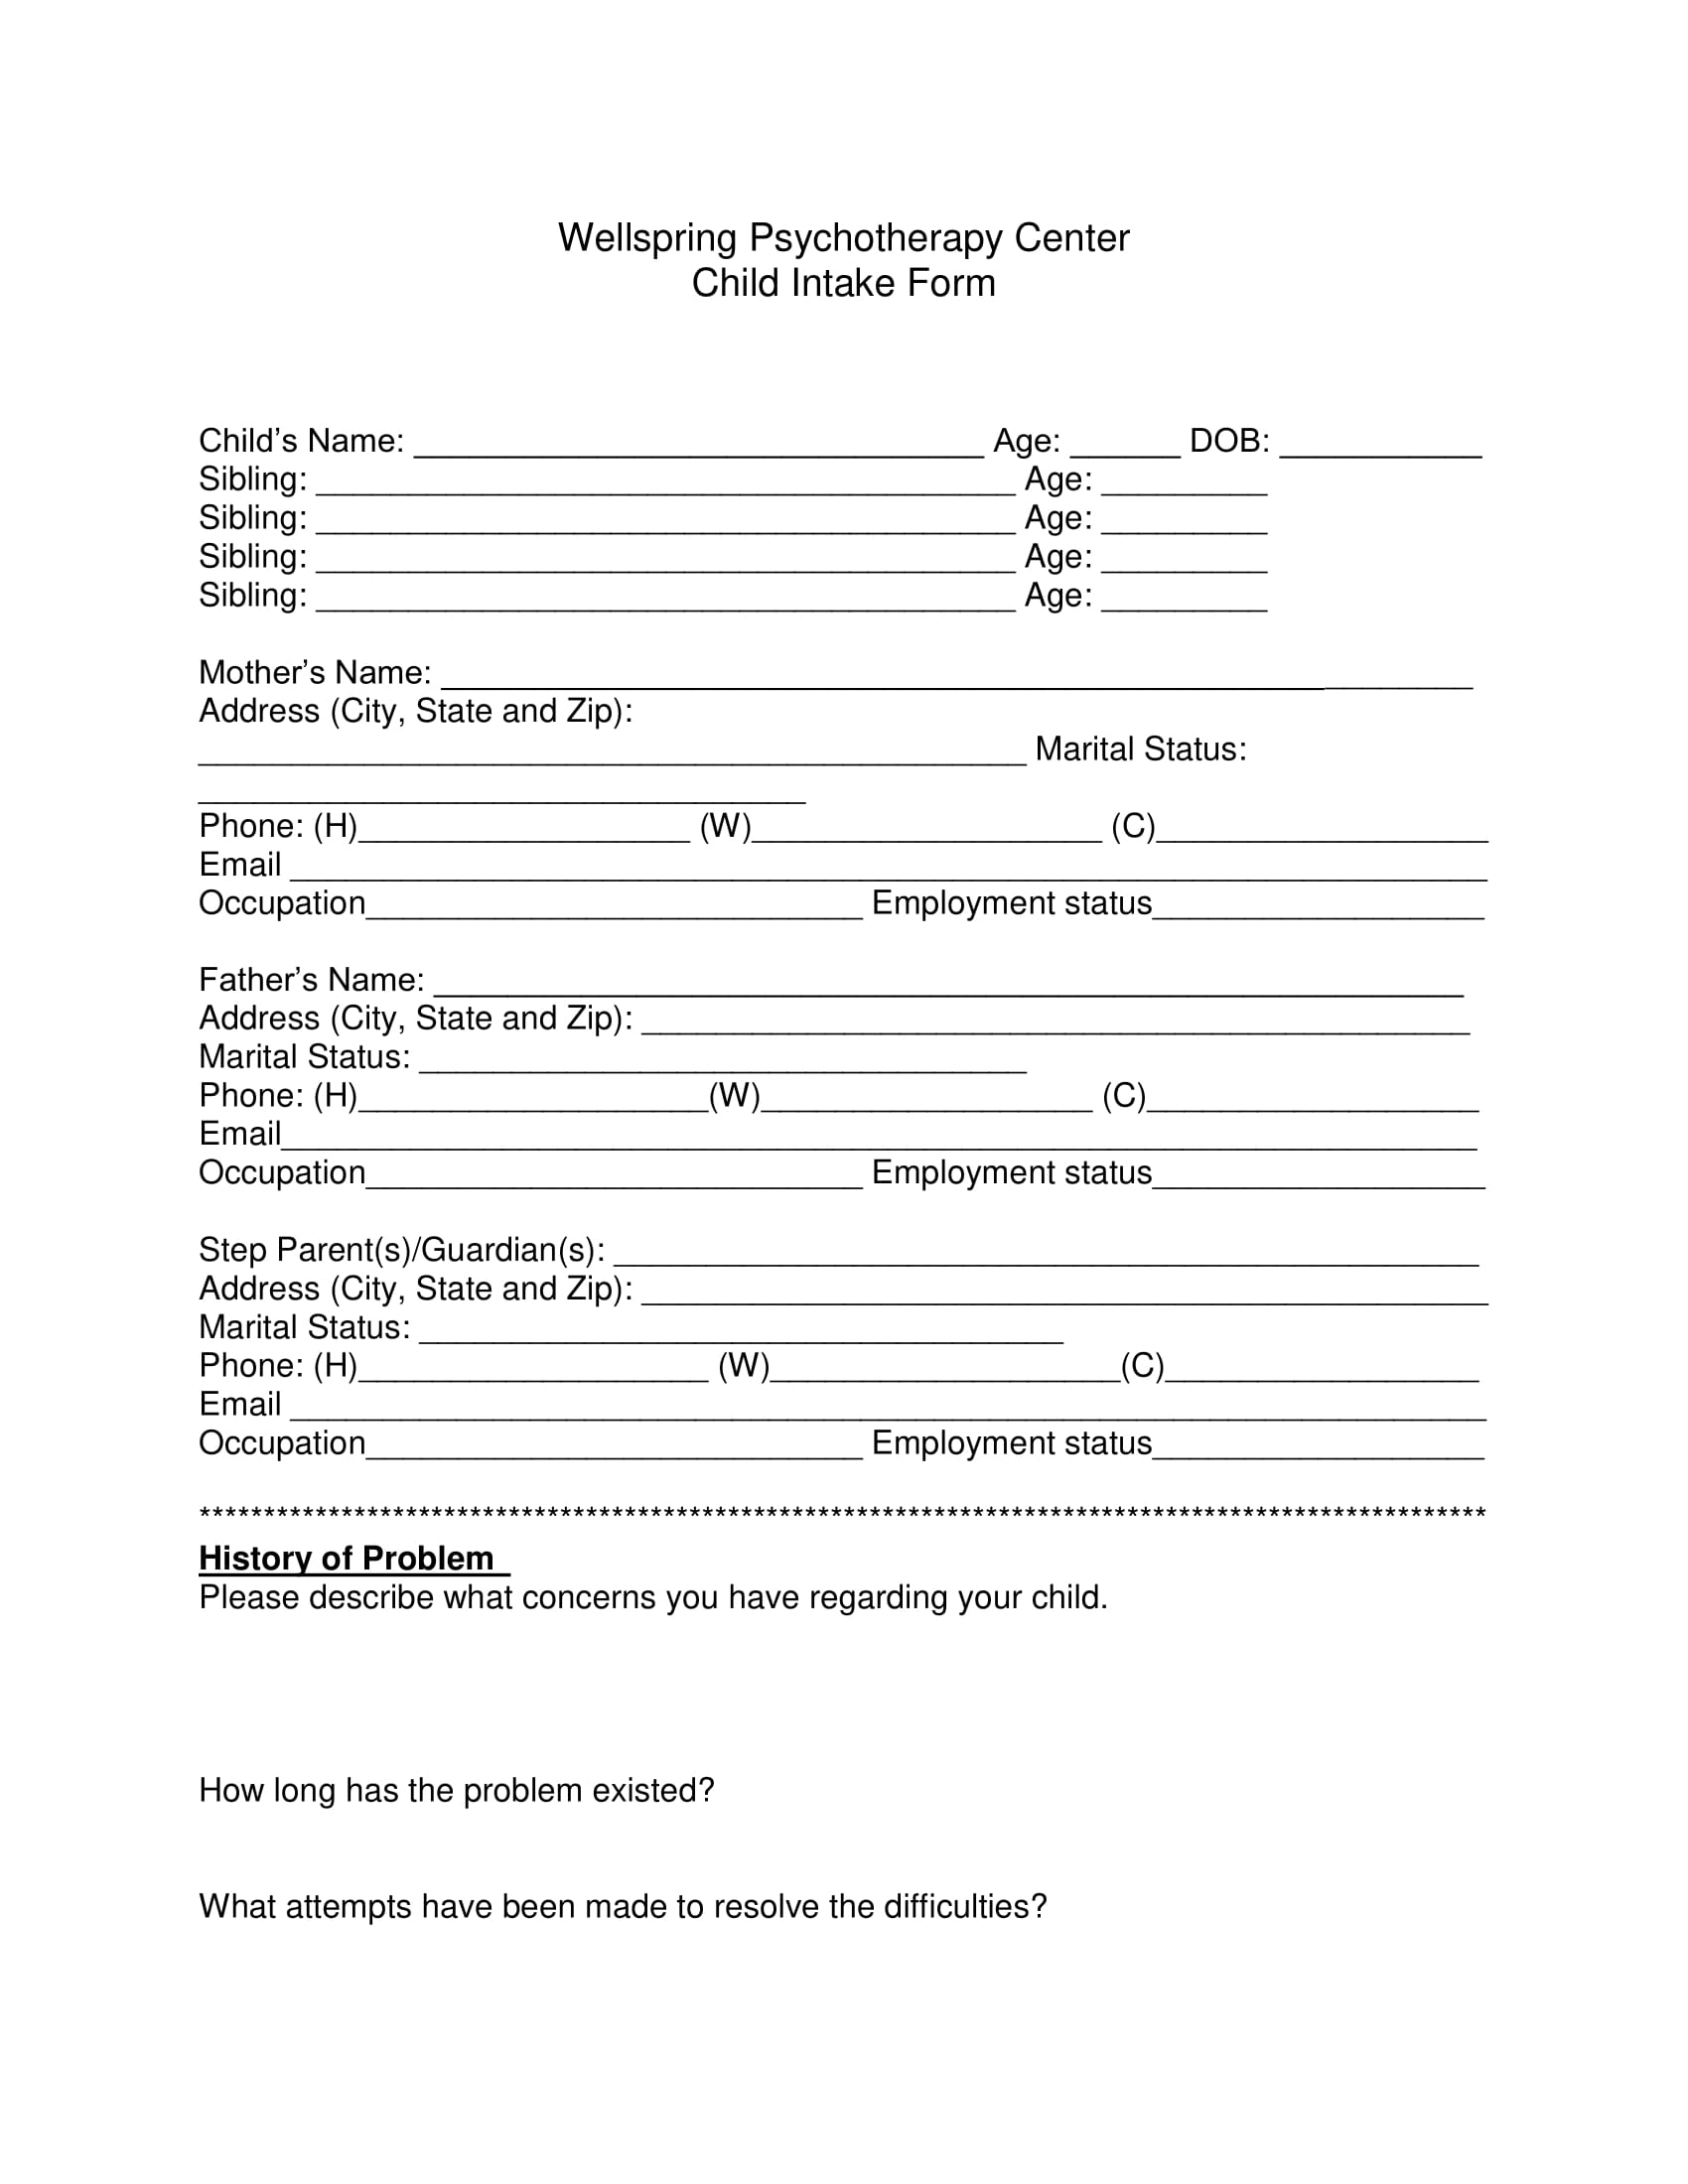 psychotherapy child intake form 1